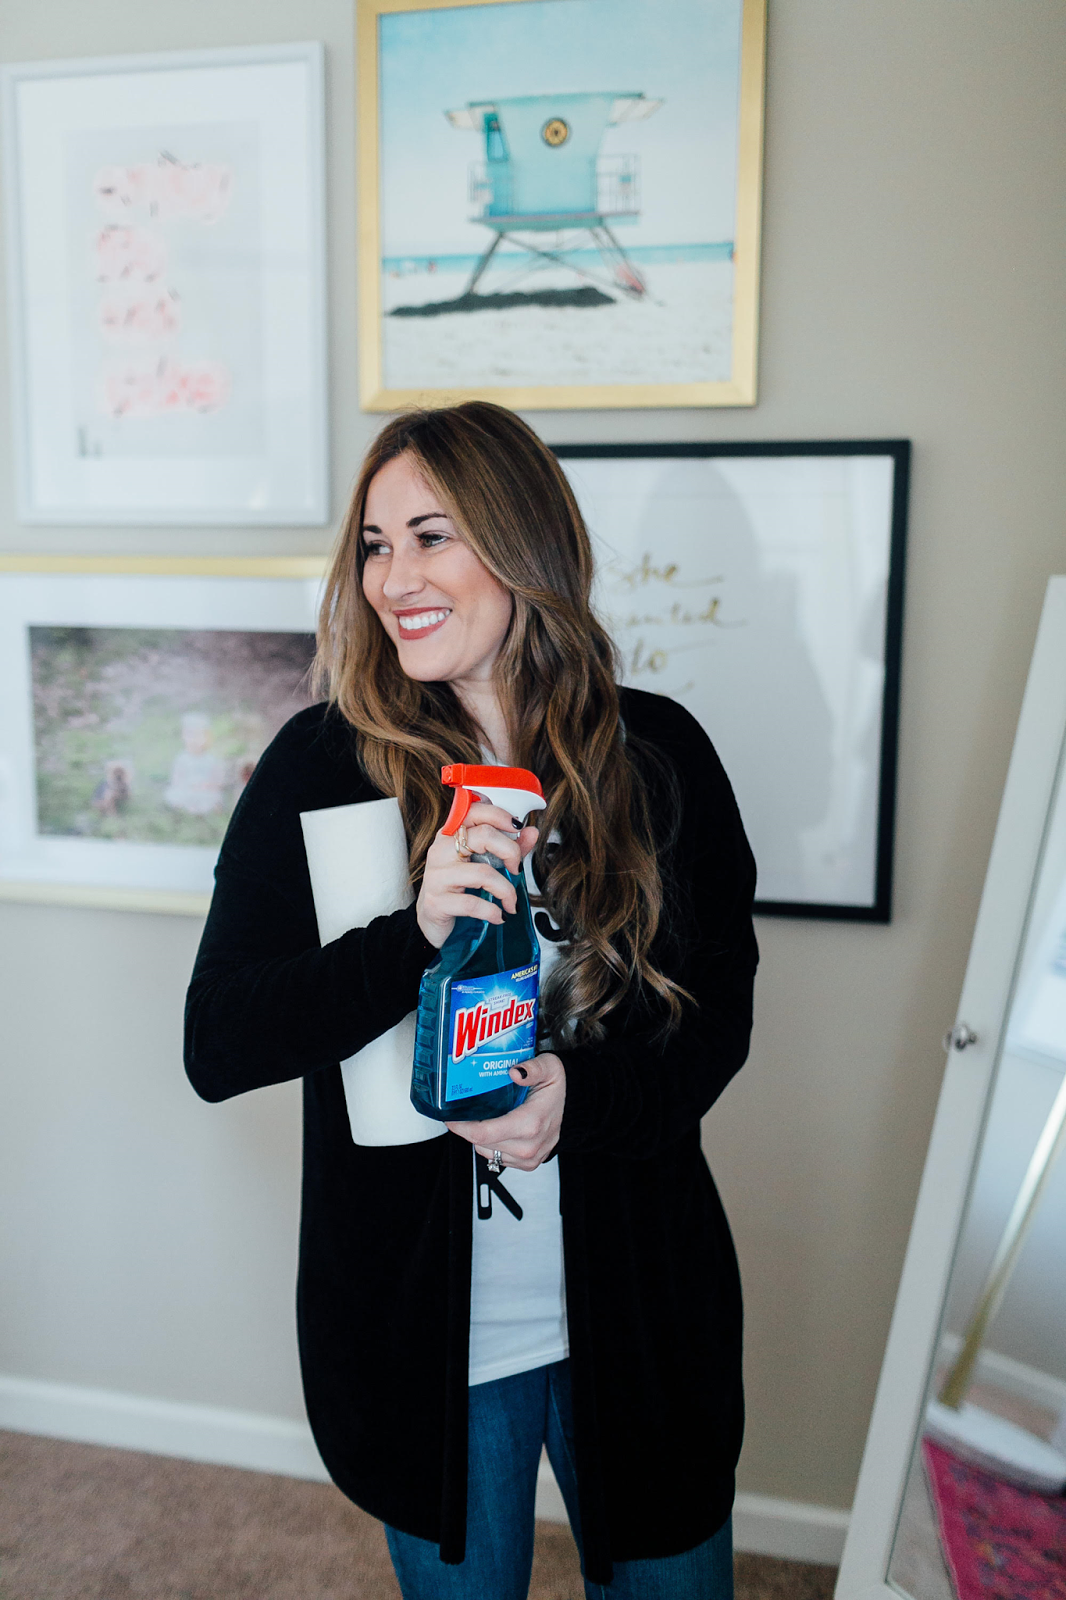 Spring Cleaning Tips to Save Time: 5 Easy Hacks by lifestyle blogger Laura from Walking in Memphis in High Heels